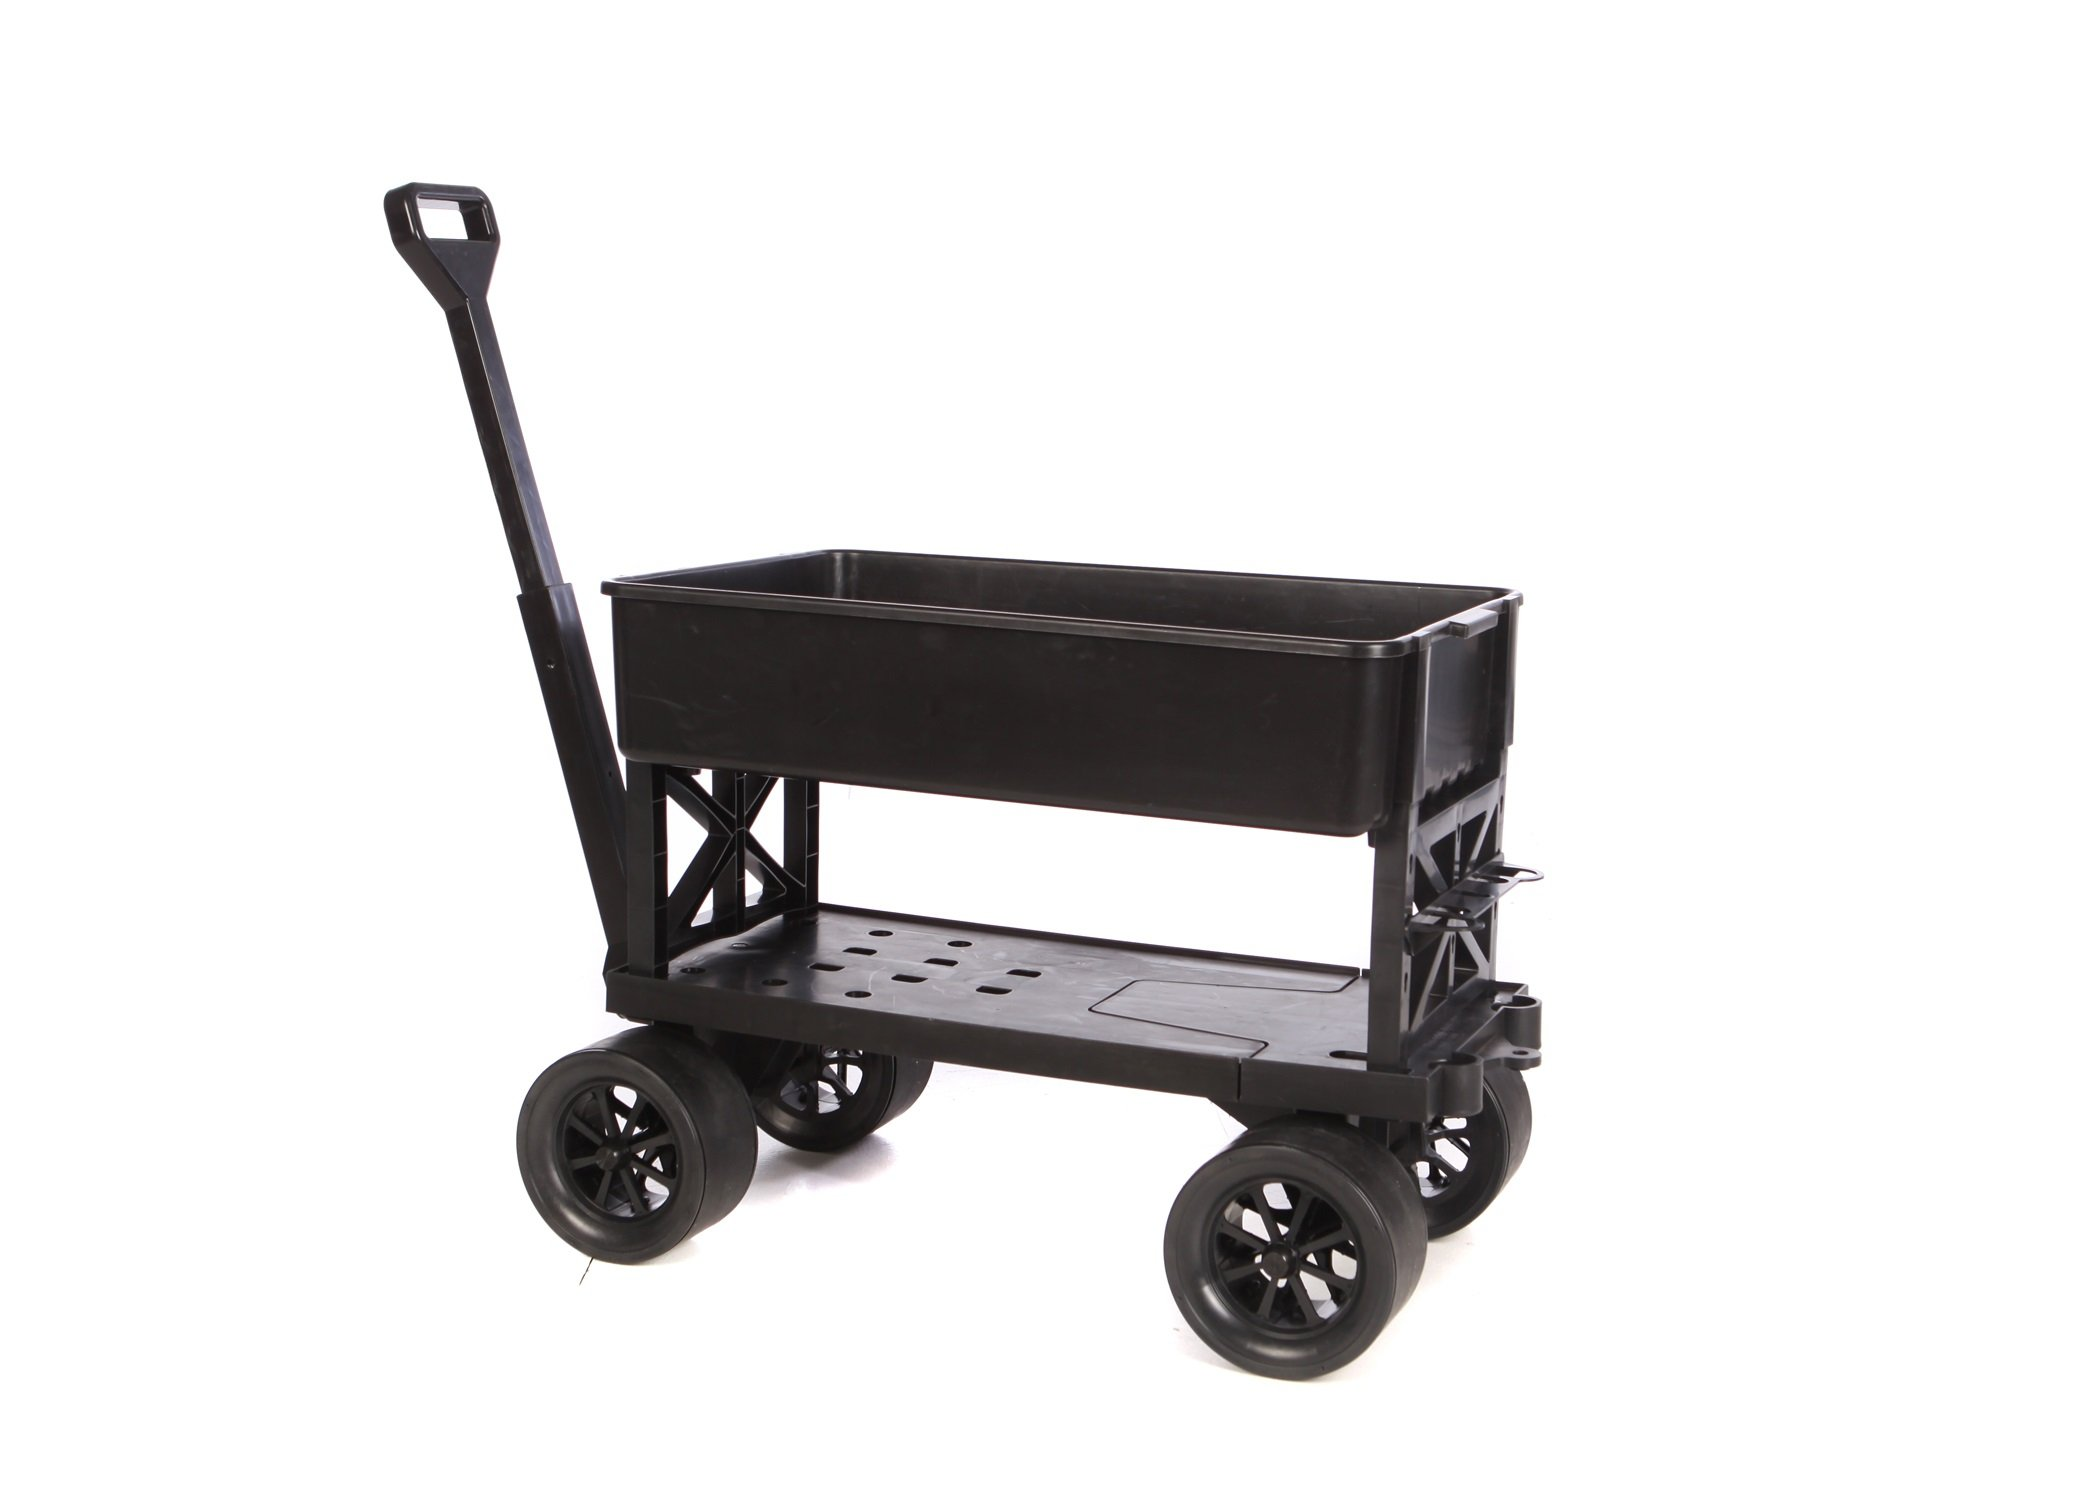 Mighty Max Cart All Purpose Utility and Garden Cart with Black Tub, 400 Lb Capacity